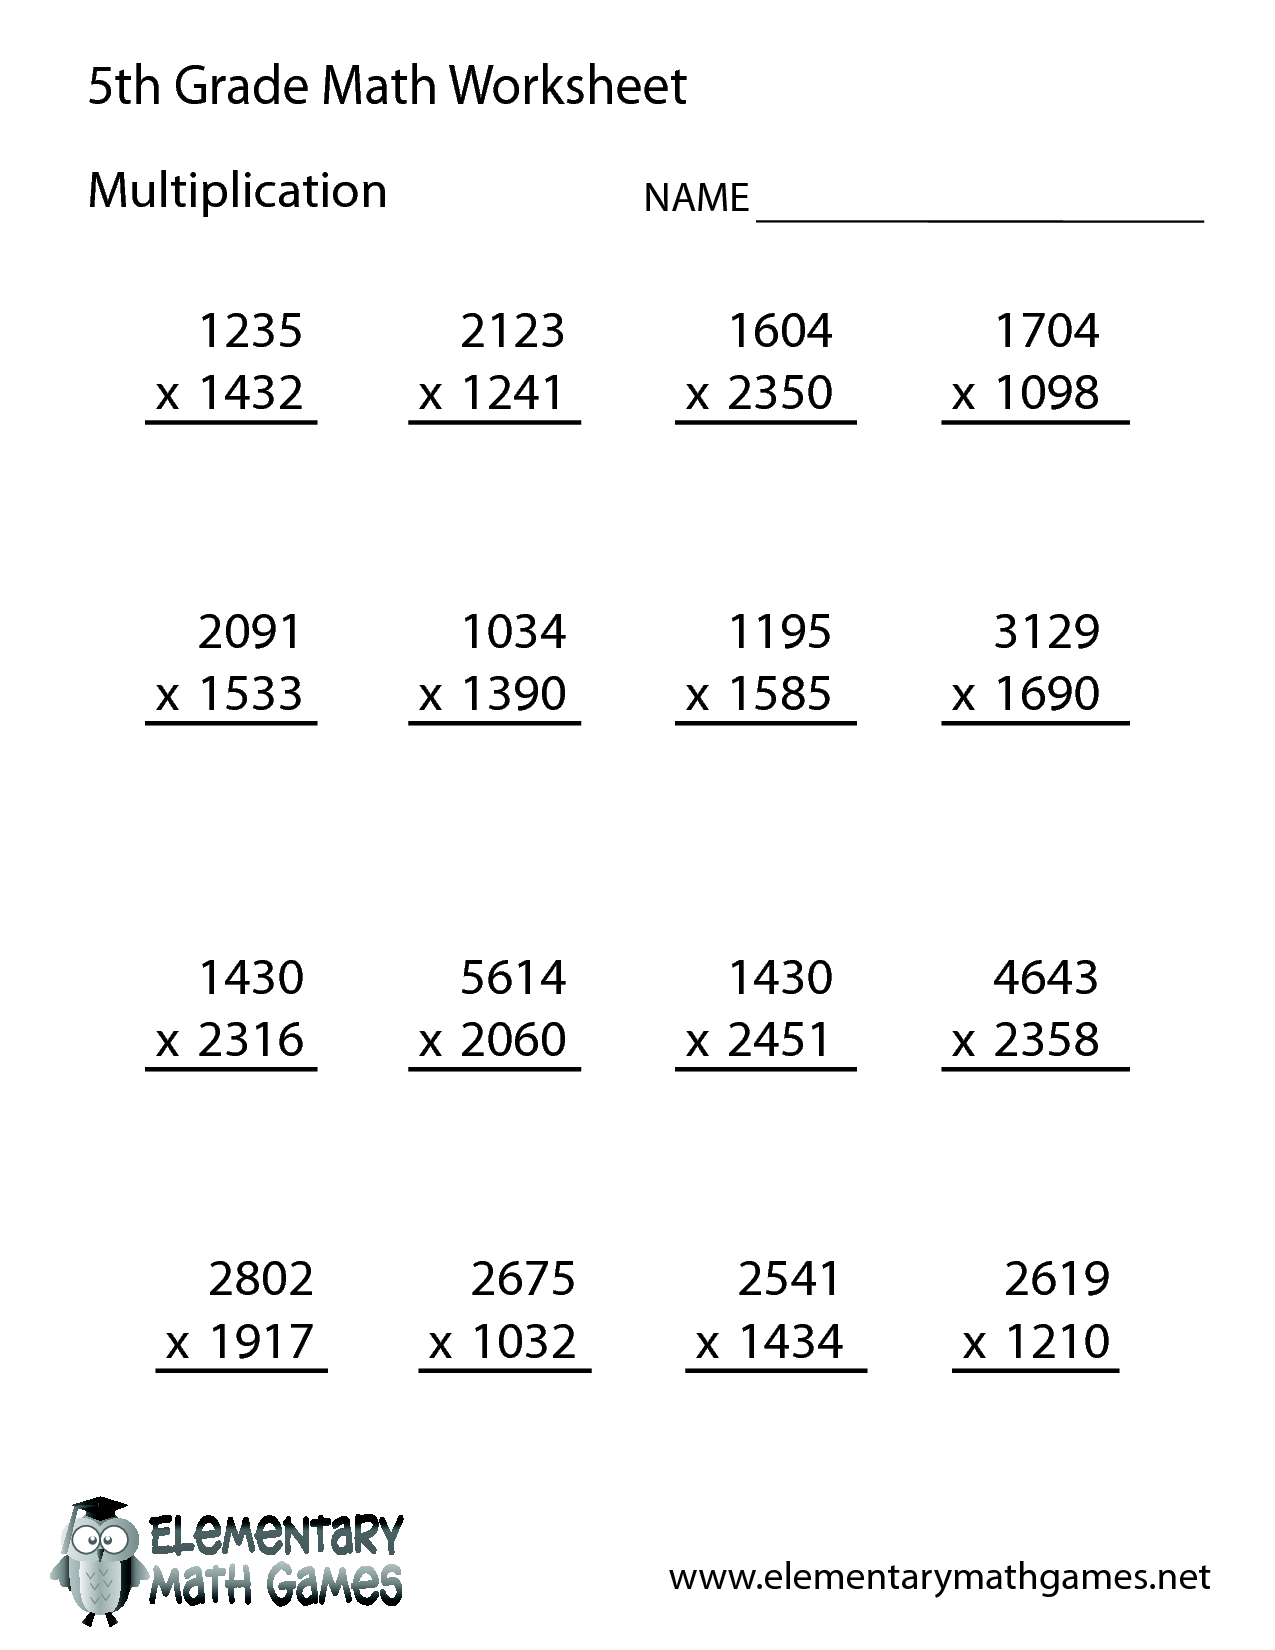 Free Math Worksheets for 5th Grade – Free Division Worksheets for 5th Grade